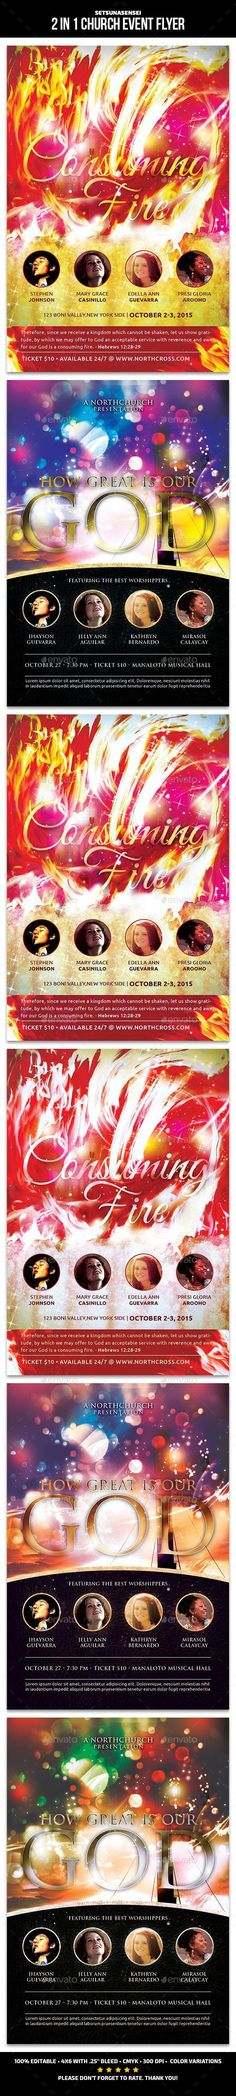 Buy 2 in 1 Church Event Flyer by SetsunaSensei on GraphicRiver. 2 in 1 Church Event Flyer This flyer is perfect for promoting your church's next concert event. Flyer Design Templates, Print Templates, Flyer Template, Creative Brochure, Creative Flyers, Letterhead Template, Brochure Template, Gospel Concert, Born Again Christian